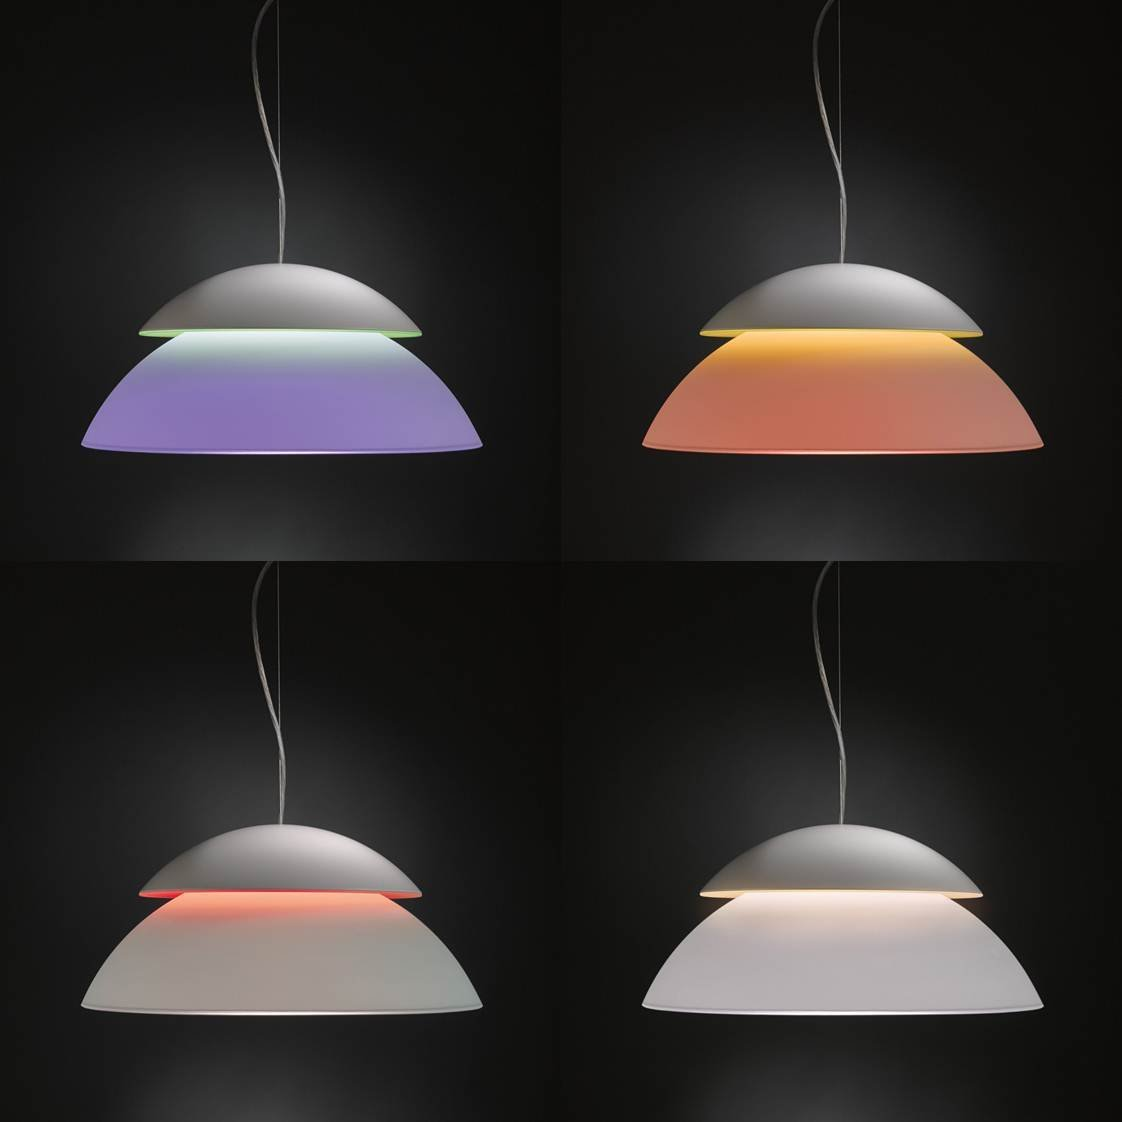 Philips Hue Supported Lights And Devices Iconnecthue B Goes To The Next Ceiling Light C Switch They Are Also Available As Pendant Please Note That Each Down Of These Consists Three Modules